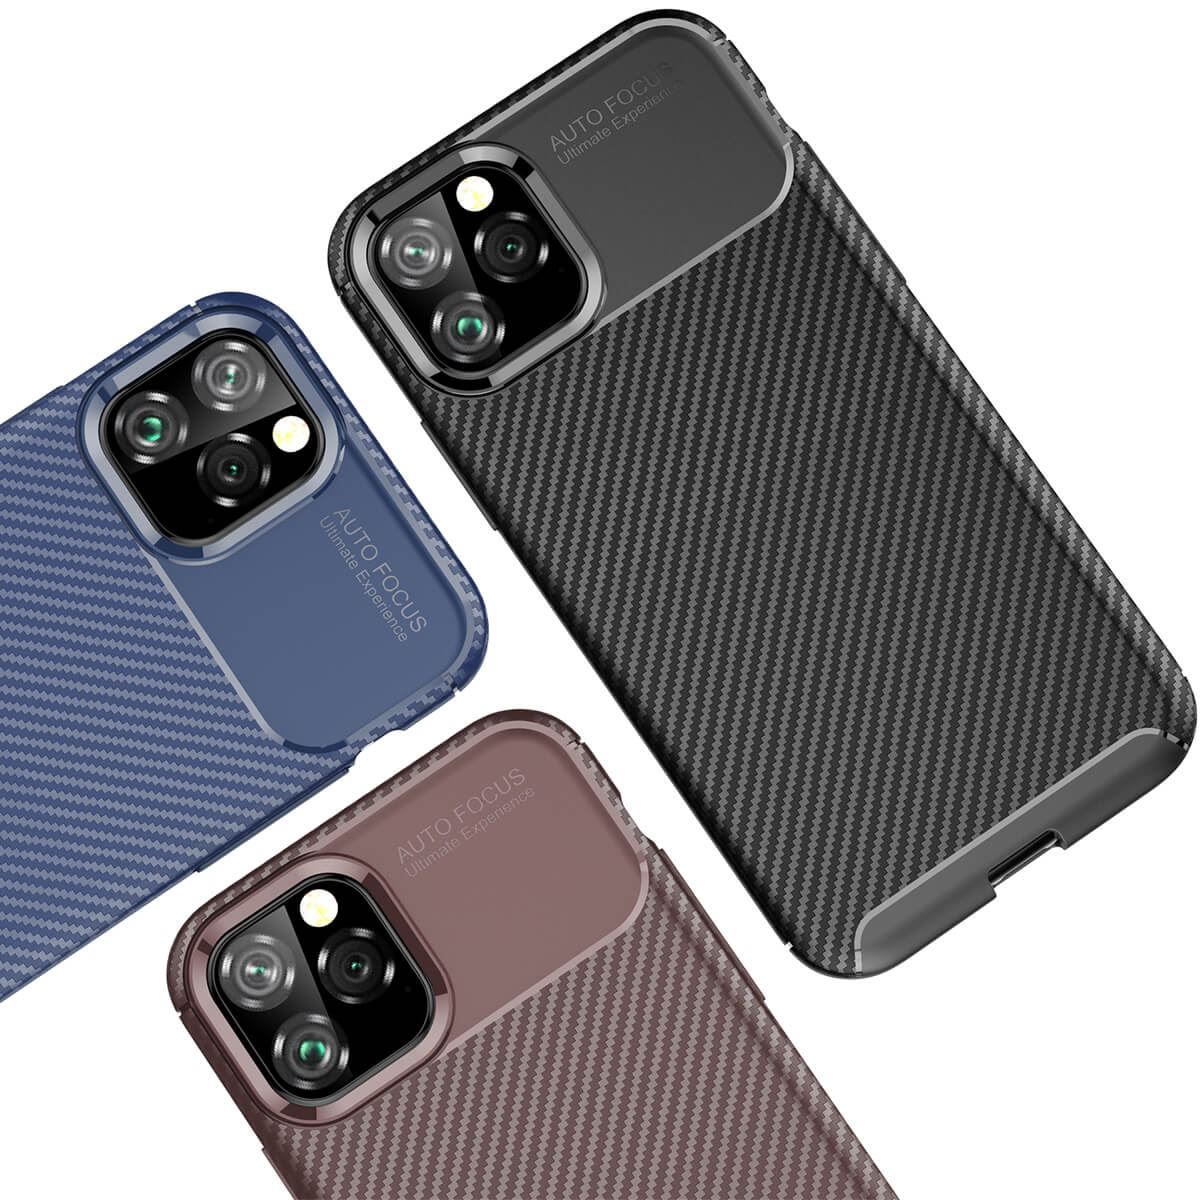 Carbon-Fibre-Soft-Case-For-iPhone-11-X-XR-Max-8-7-6-Plus-Slim-TPU-Silicone-Cover thumbnail 10